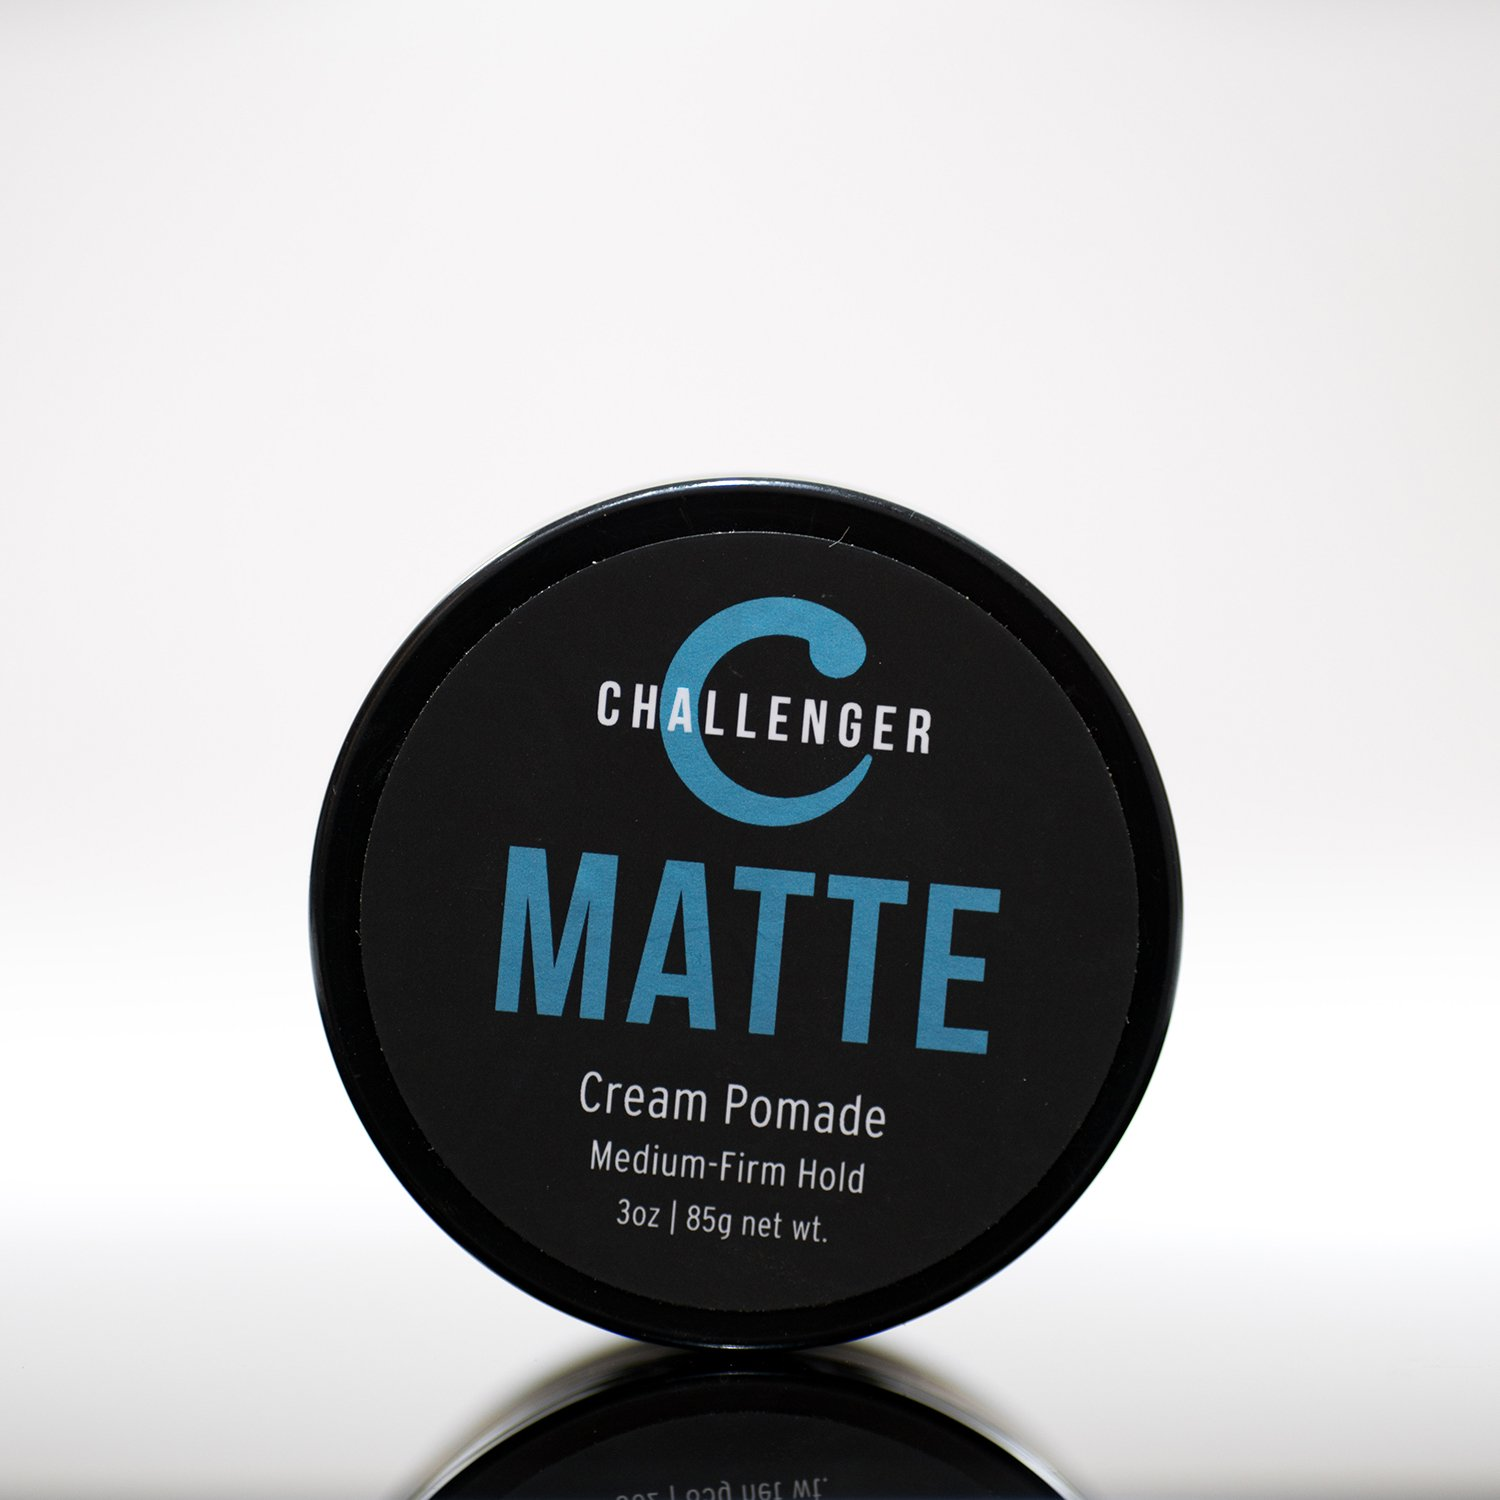 Matte Cream Pomade - Challenger 3oz - Medium Firm Hold - Water Based, Clean & Subtle Scent, Travel Friendly. Men's Hair Wax, Fiber, Clay, Paste, Styling Cream All In One by Challenger (Image #1)